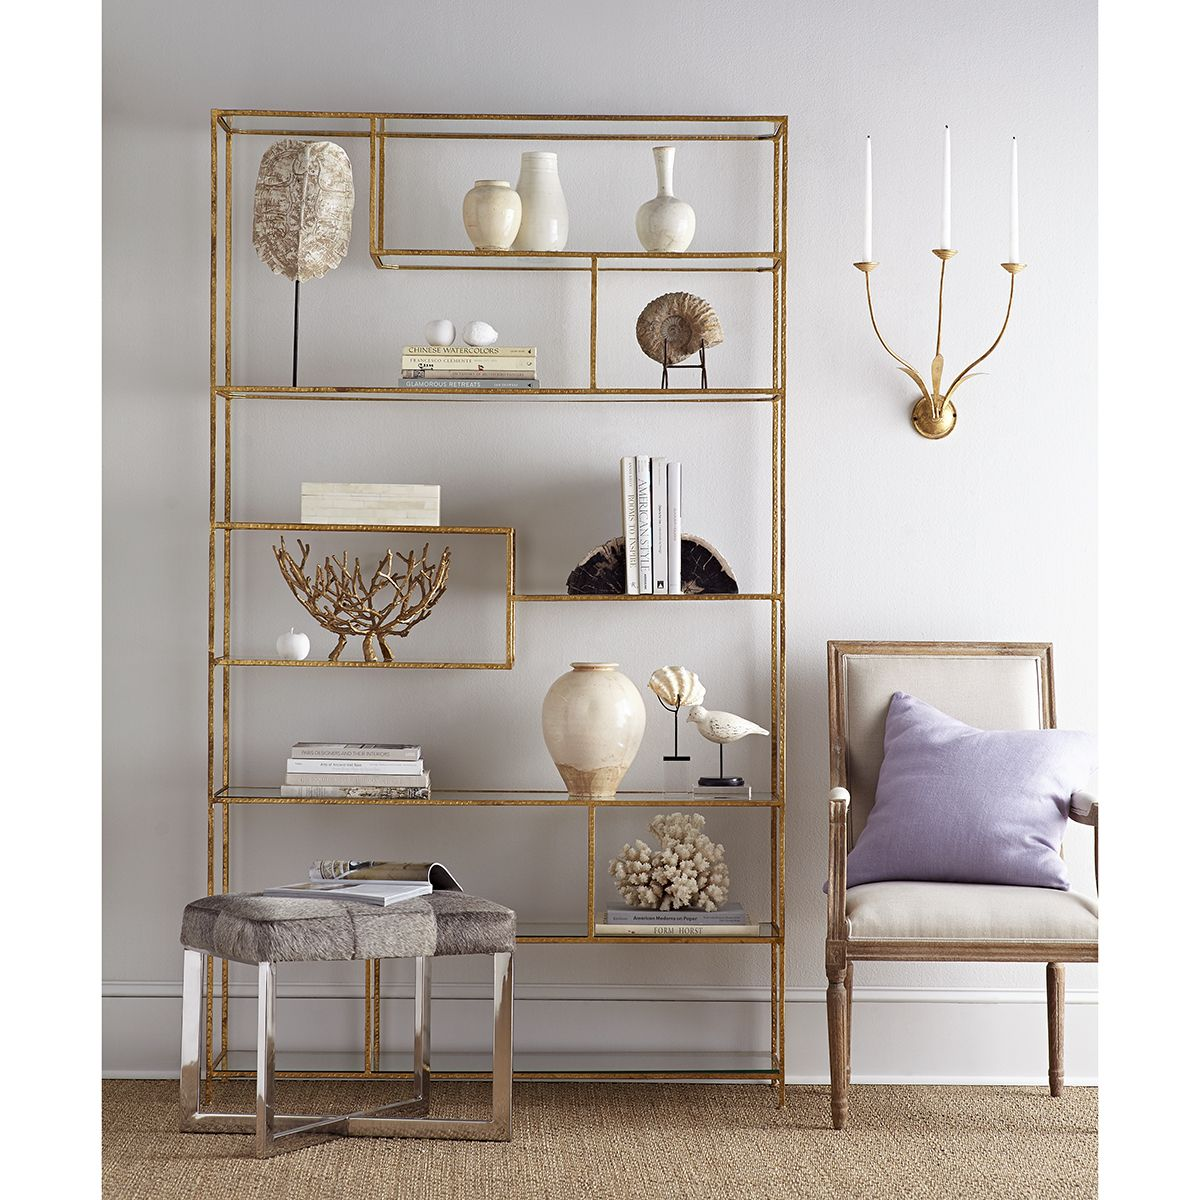 Small Elegant Home Designs: Vignettes, Collections & Displays